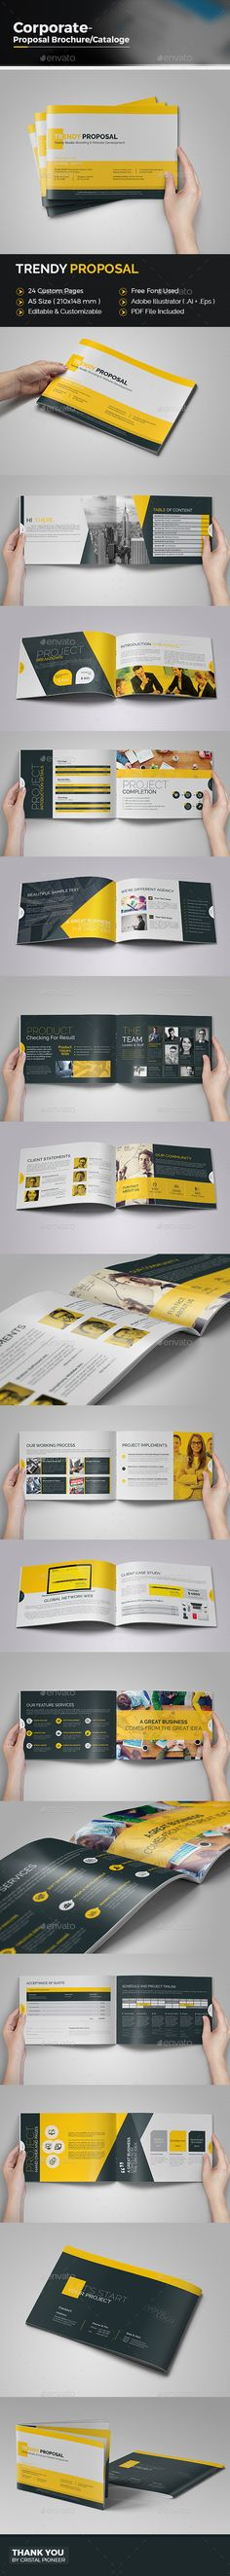 Proposal Proposal templates, Proposals and Project proposal - professional proposal templates